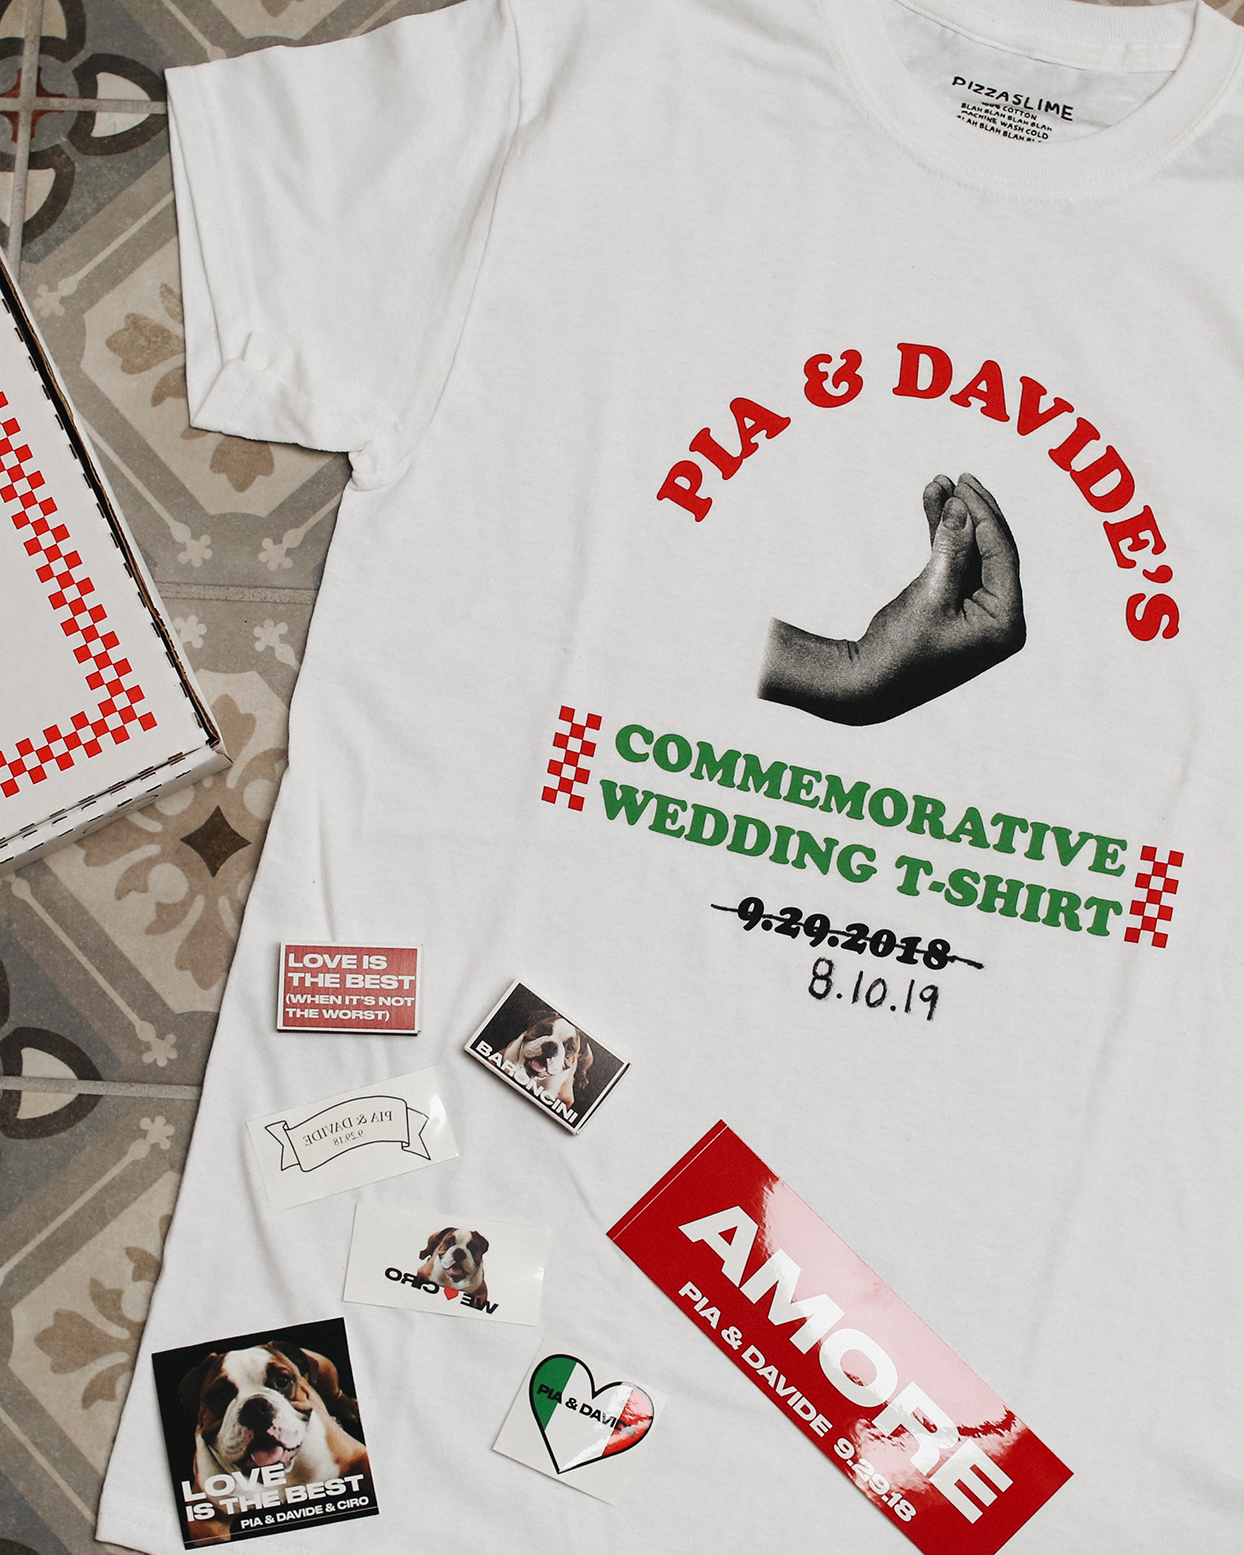 pia davide commemorative wedding shirt and favors